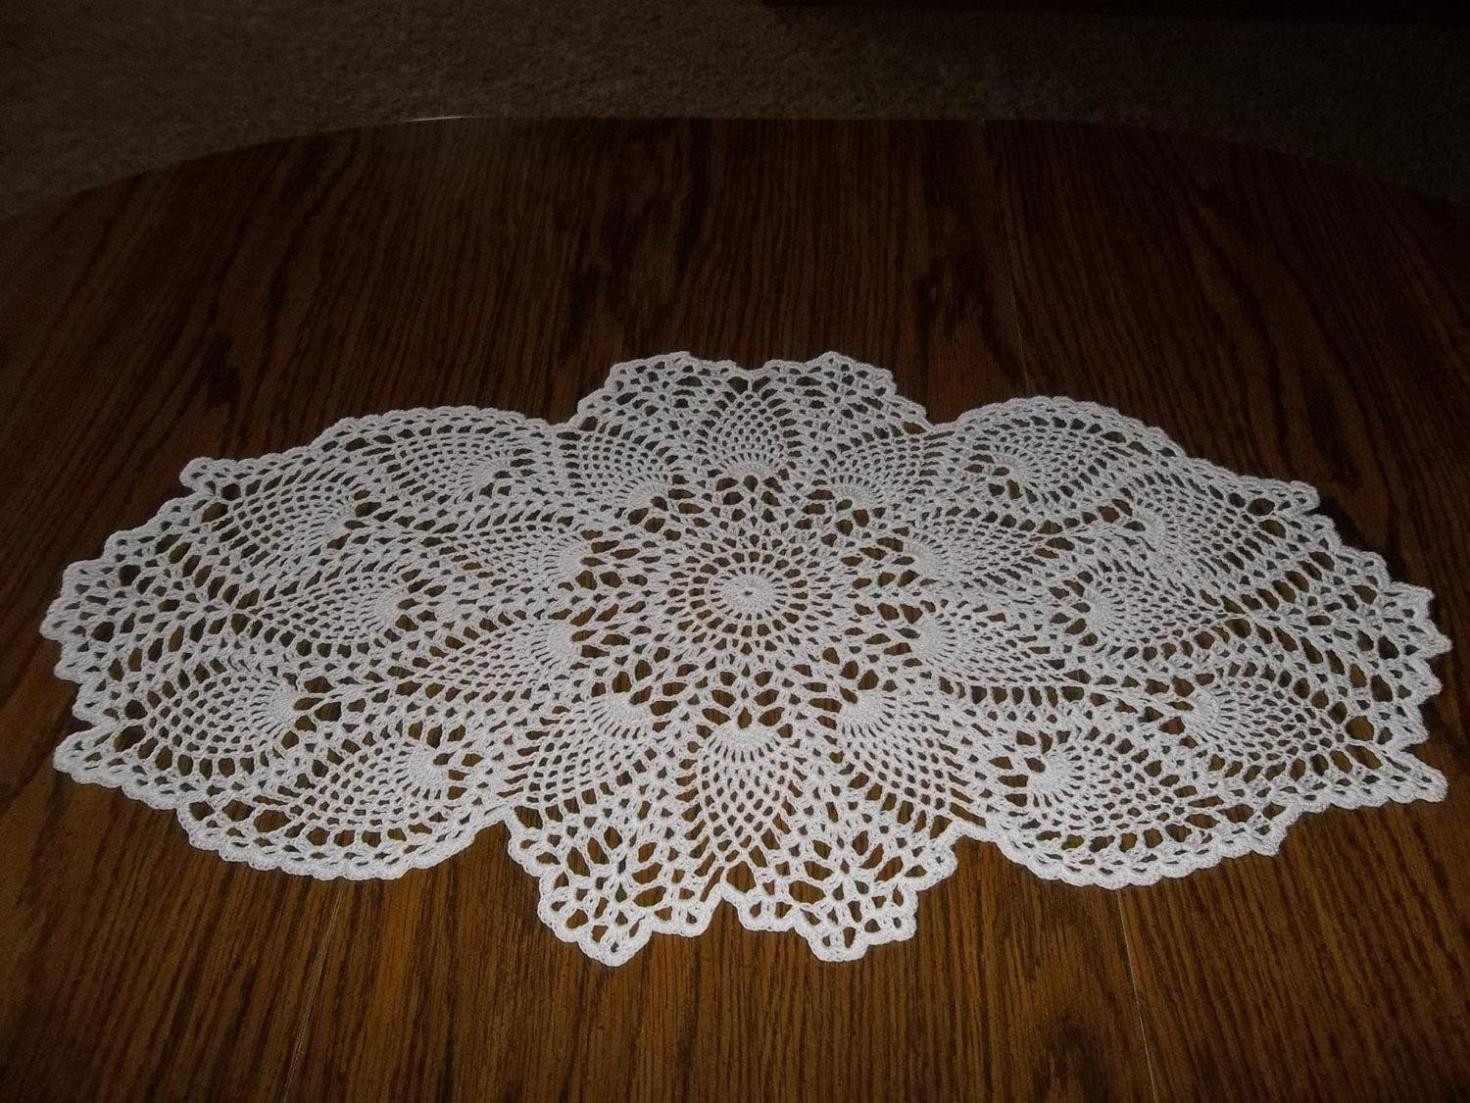 Crochet Table Runner Patterns Elegant Crochet Table Runners • Table Runners Of Amazing 45 Pics Crochet Table Runner Patterns